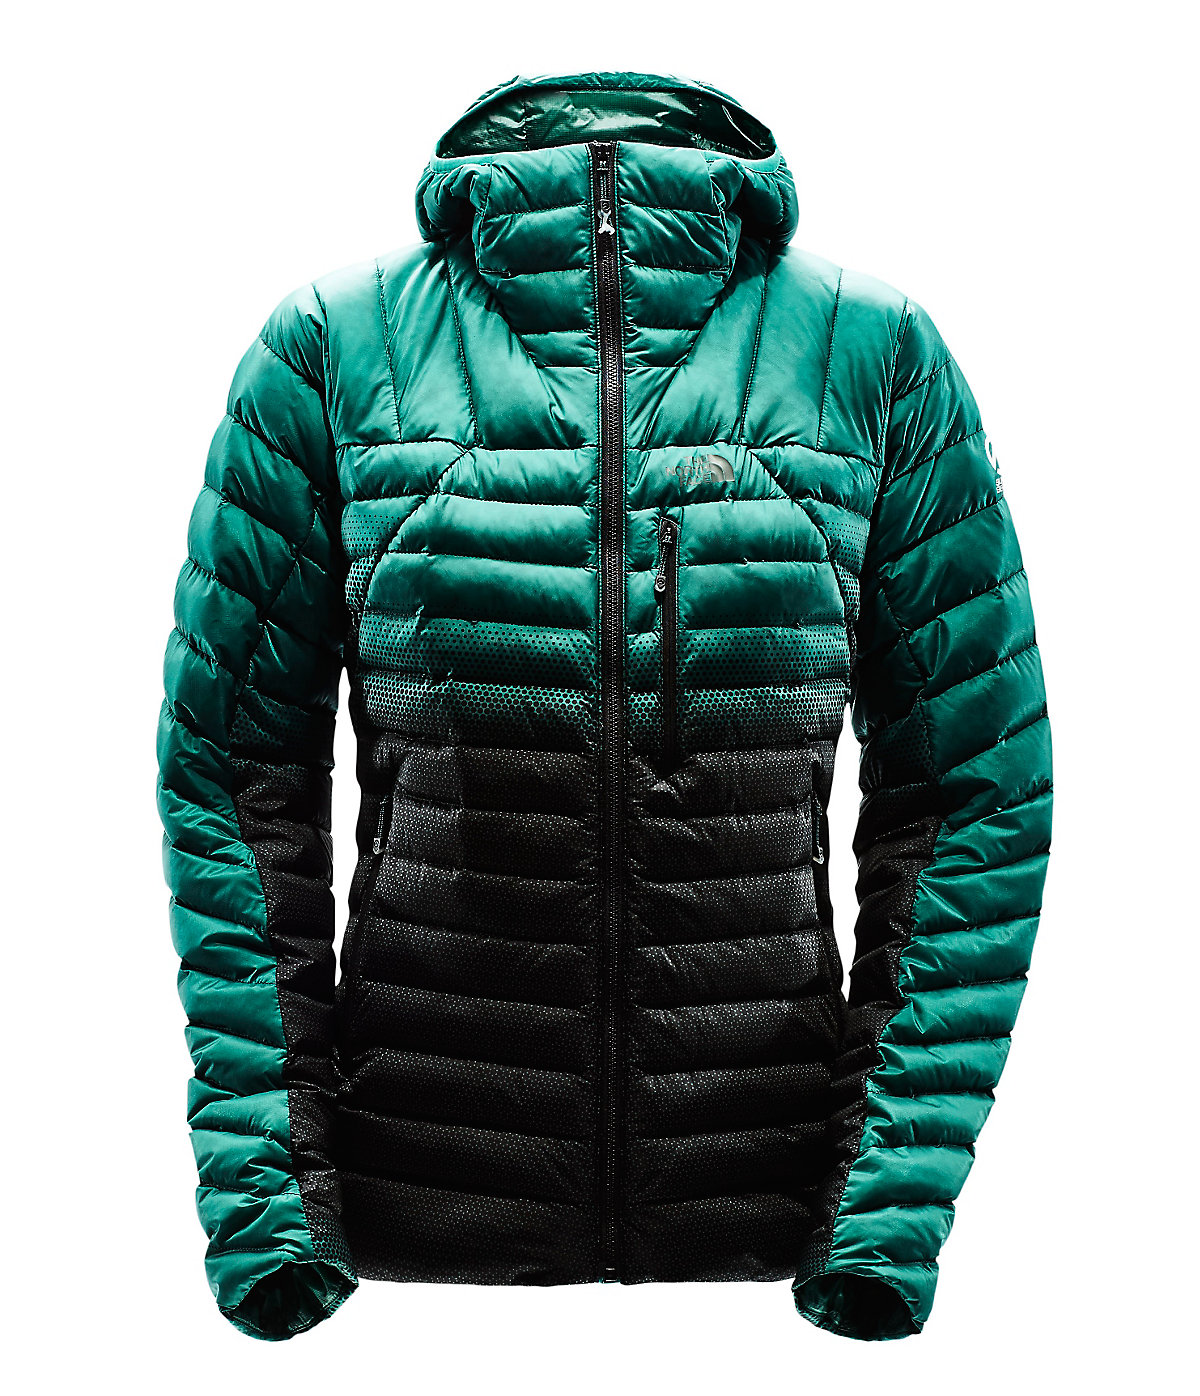 98d2d027b The North Face Women's Summit L3 Down Mid-Layer Jacket